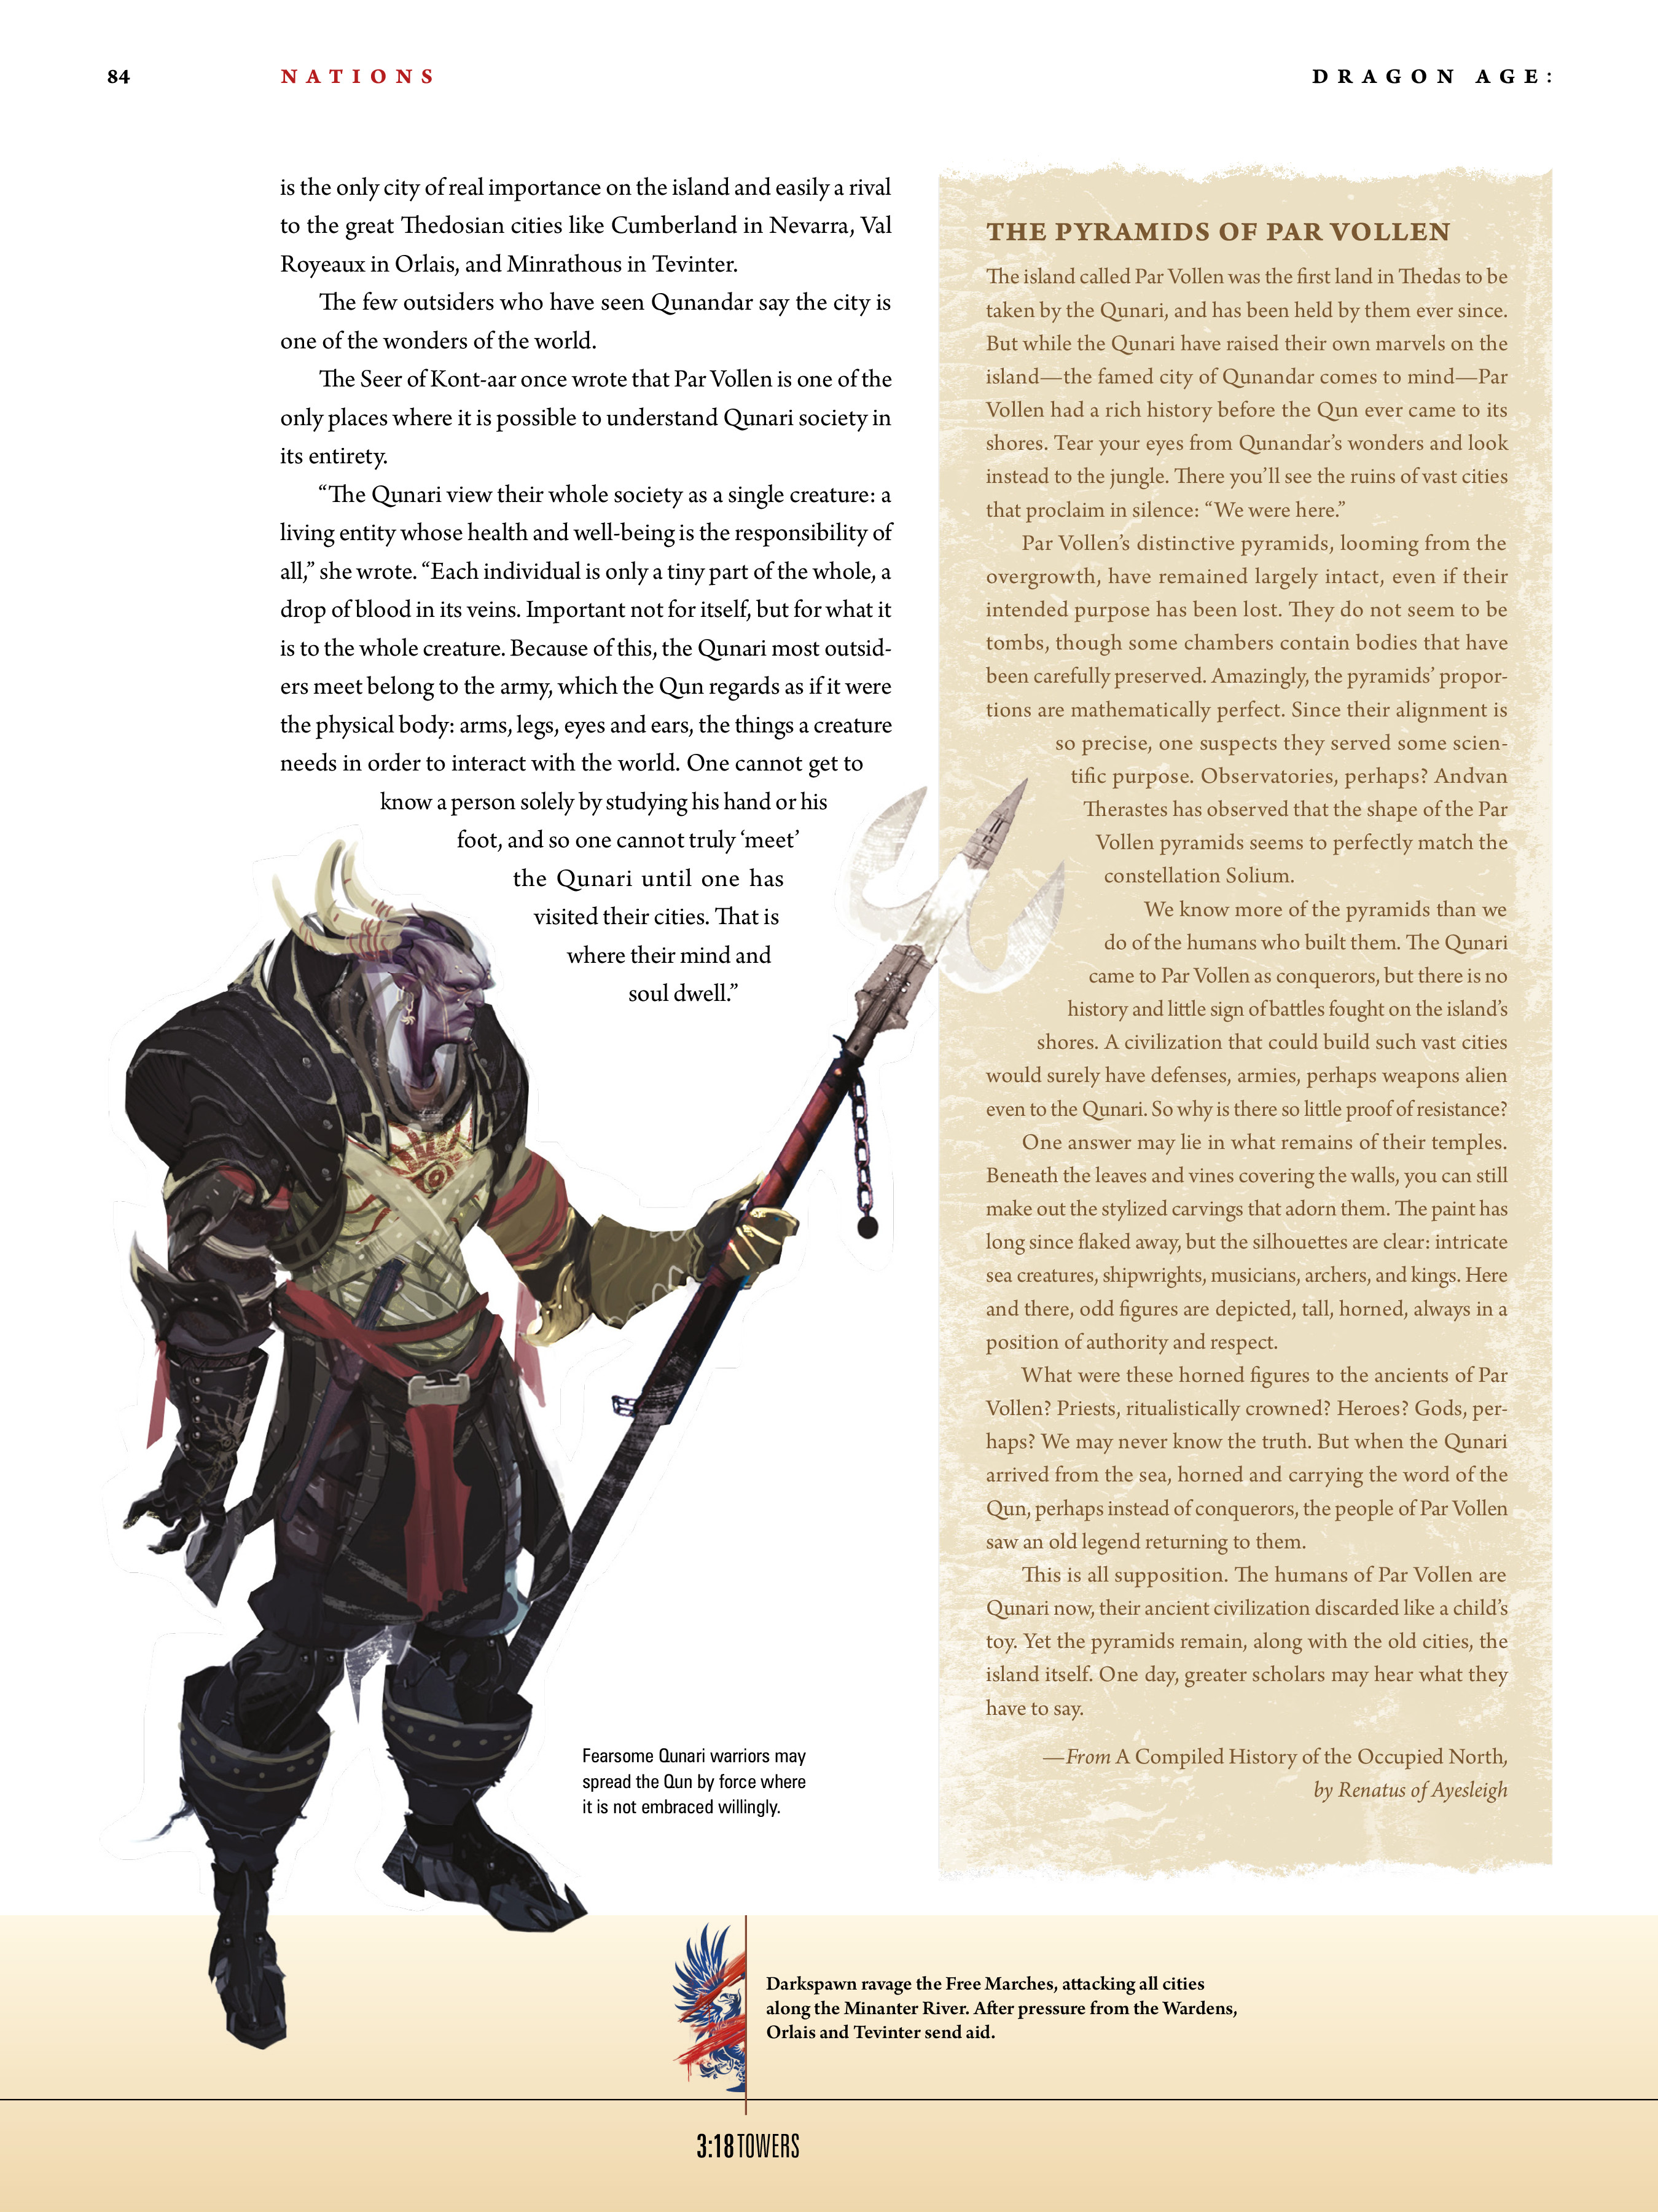 Read online Dragon Age: The World of Thedas comic -  Issue # TPB 1 - 68